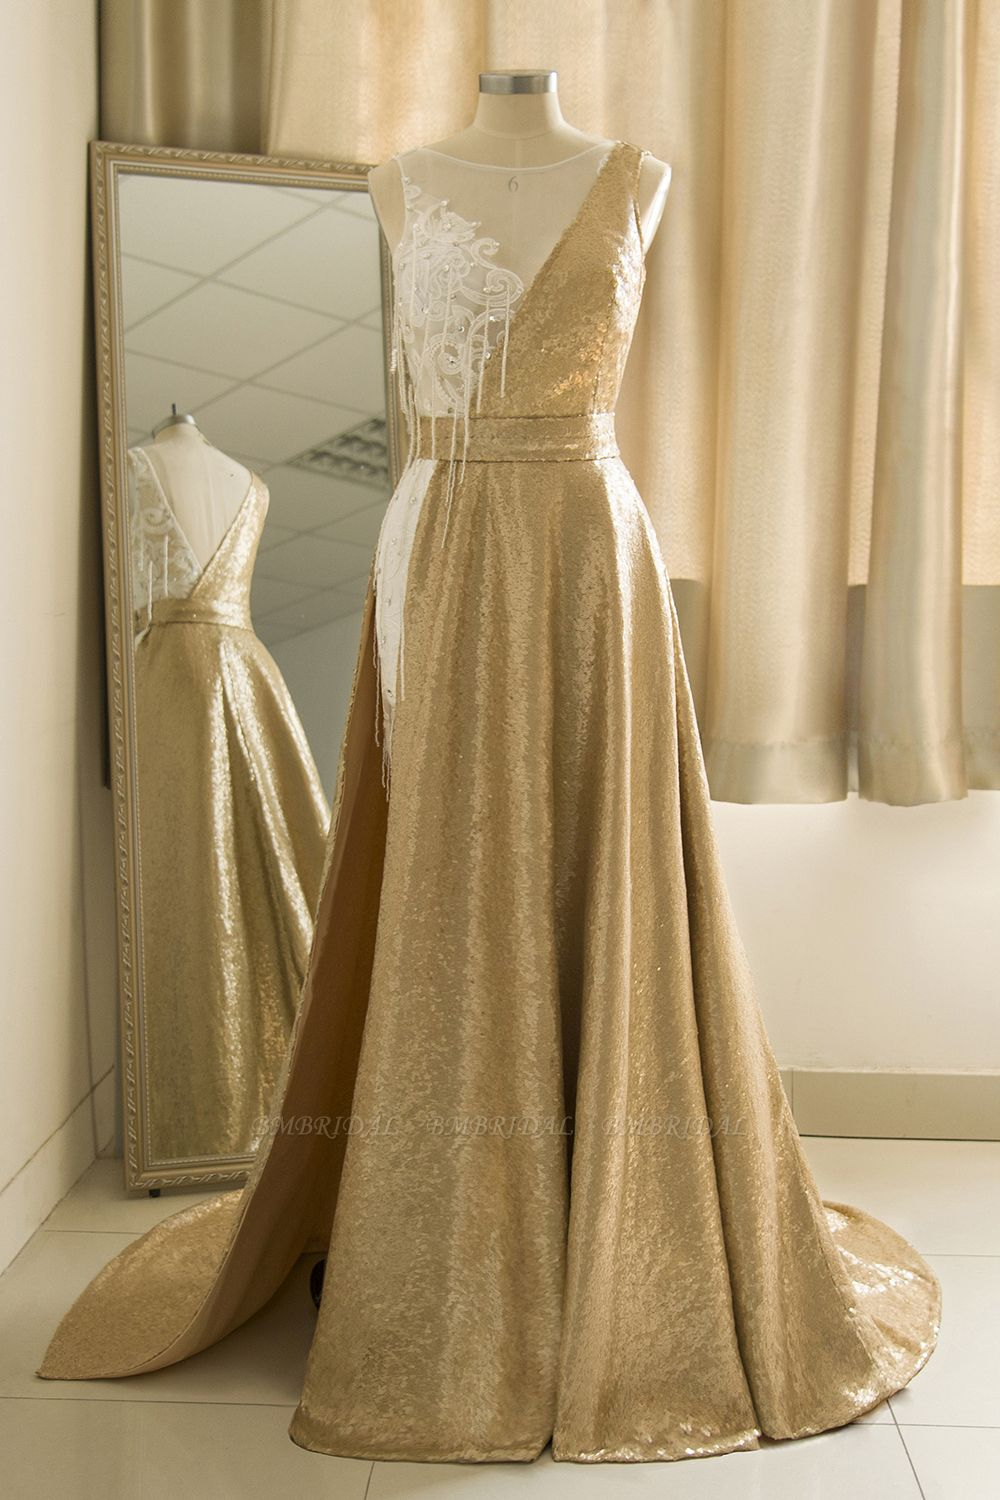 BMbridal Stylish Jewel Gold Sequined A-Line Prom Dresses Sleeveless White Appliques Evening Dress with Beadings